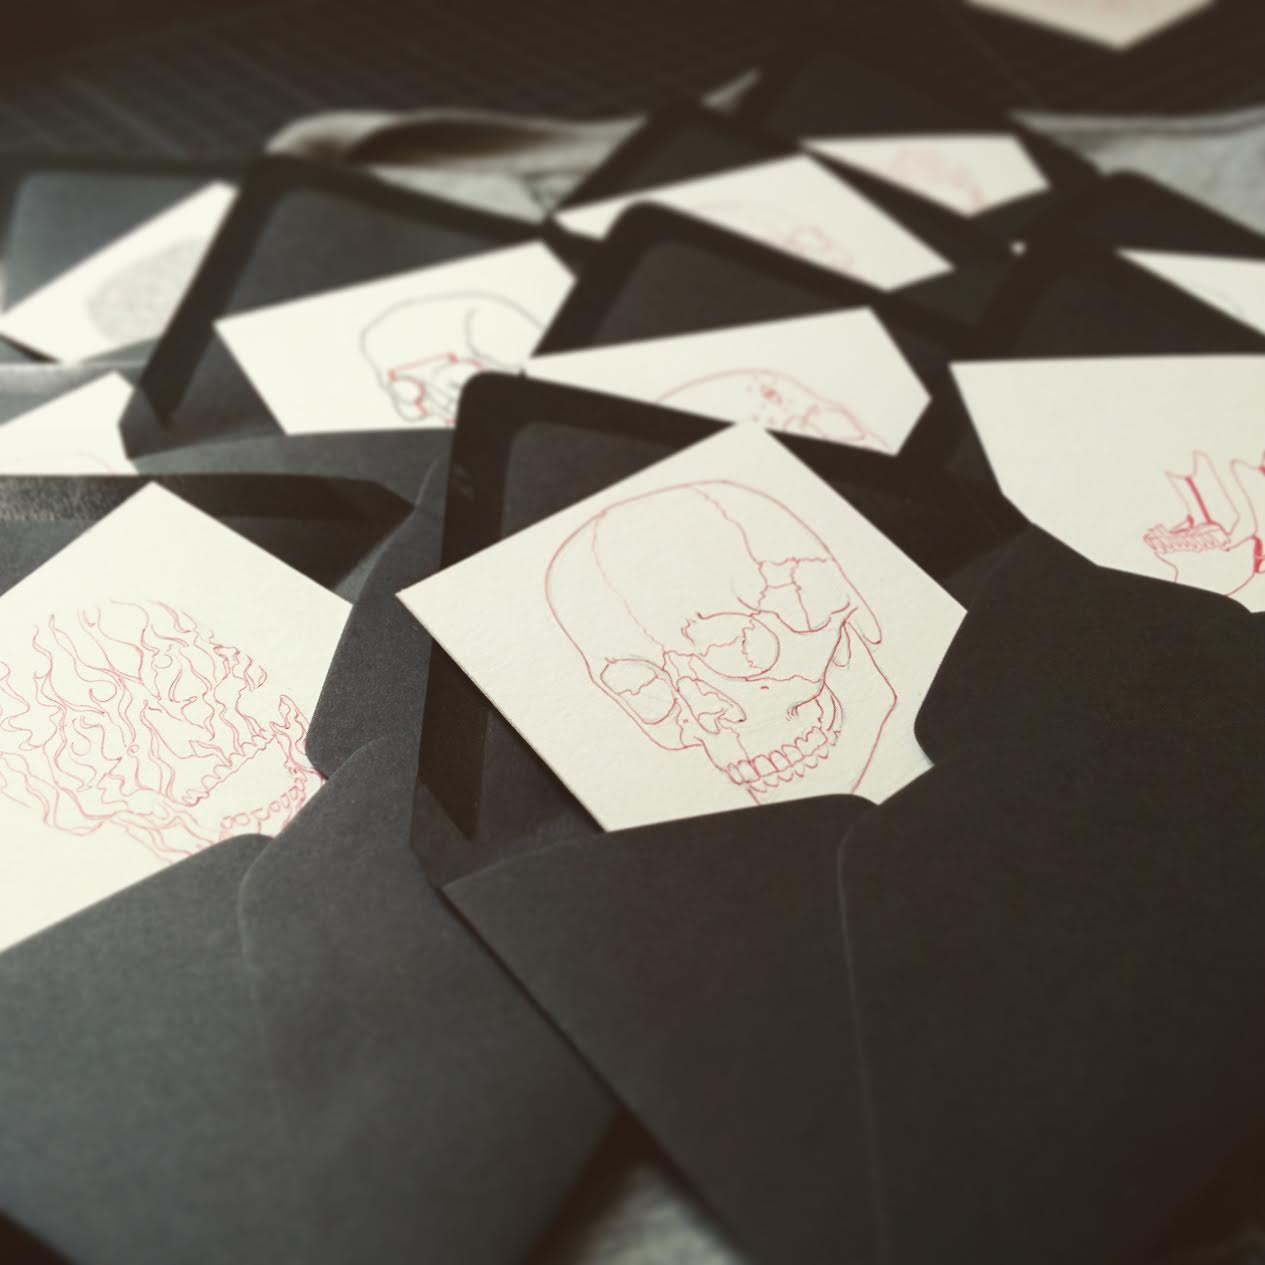 getting the sketches in some nice envelopes...